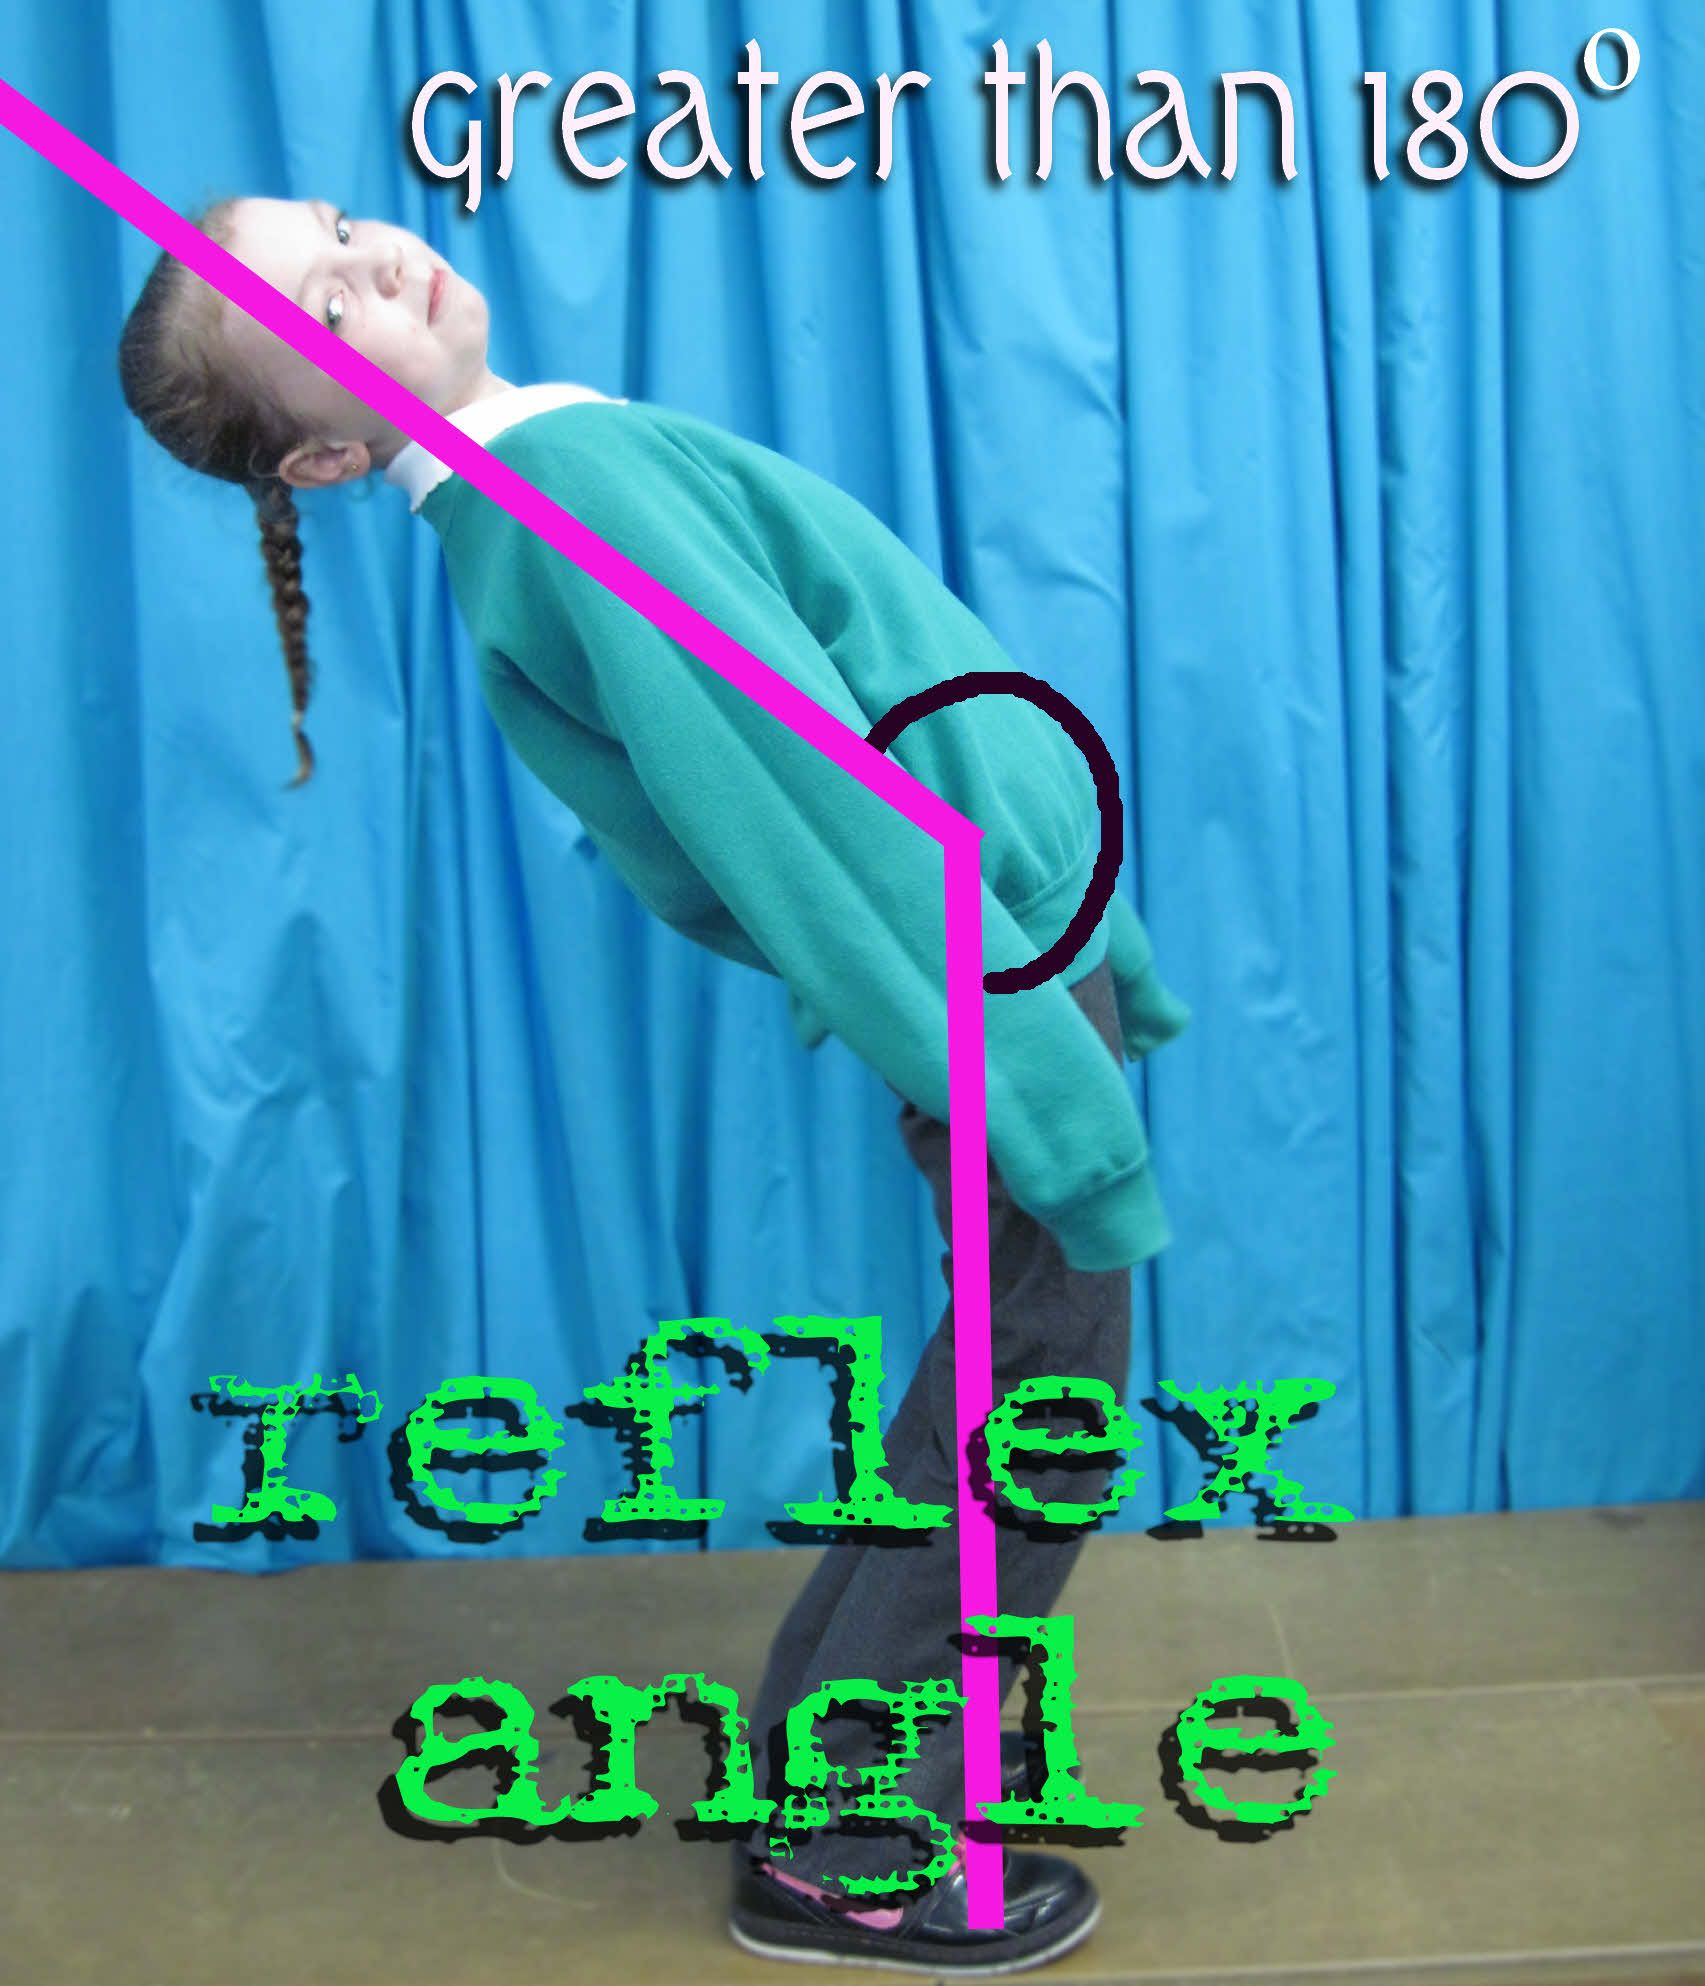 Reflex angles occur along with acute, right and obtuse angles ...